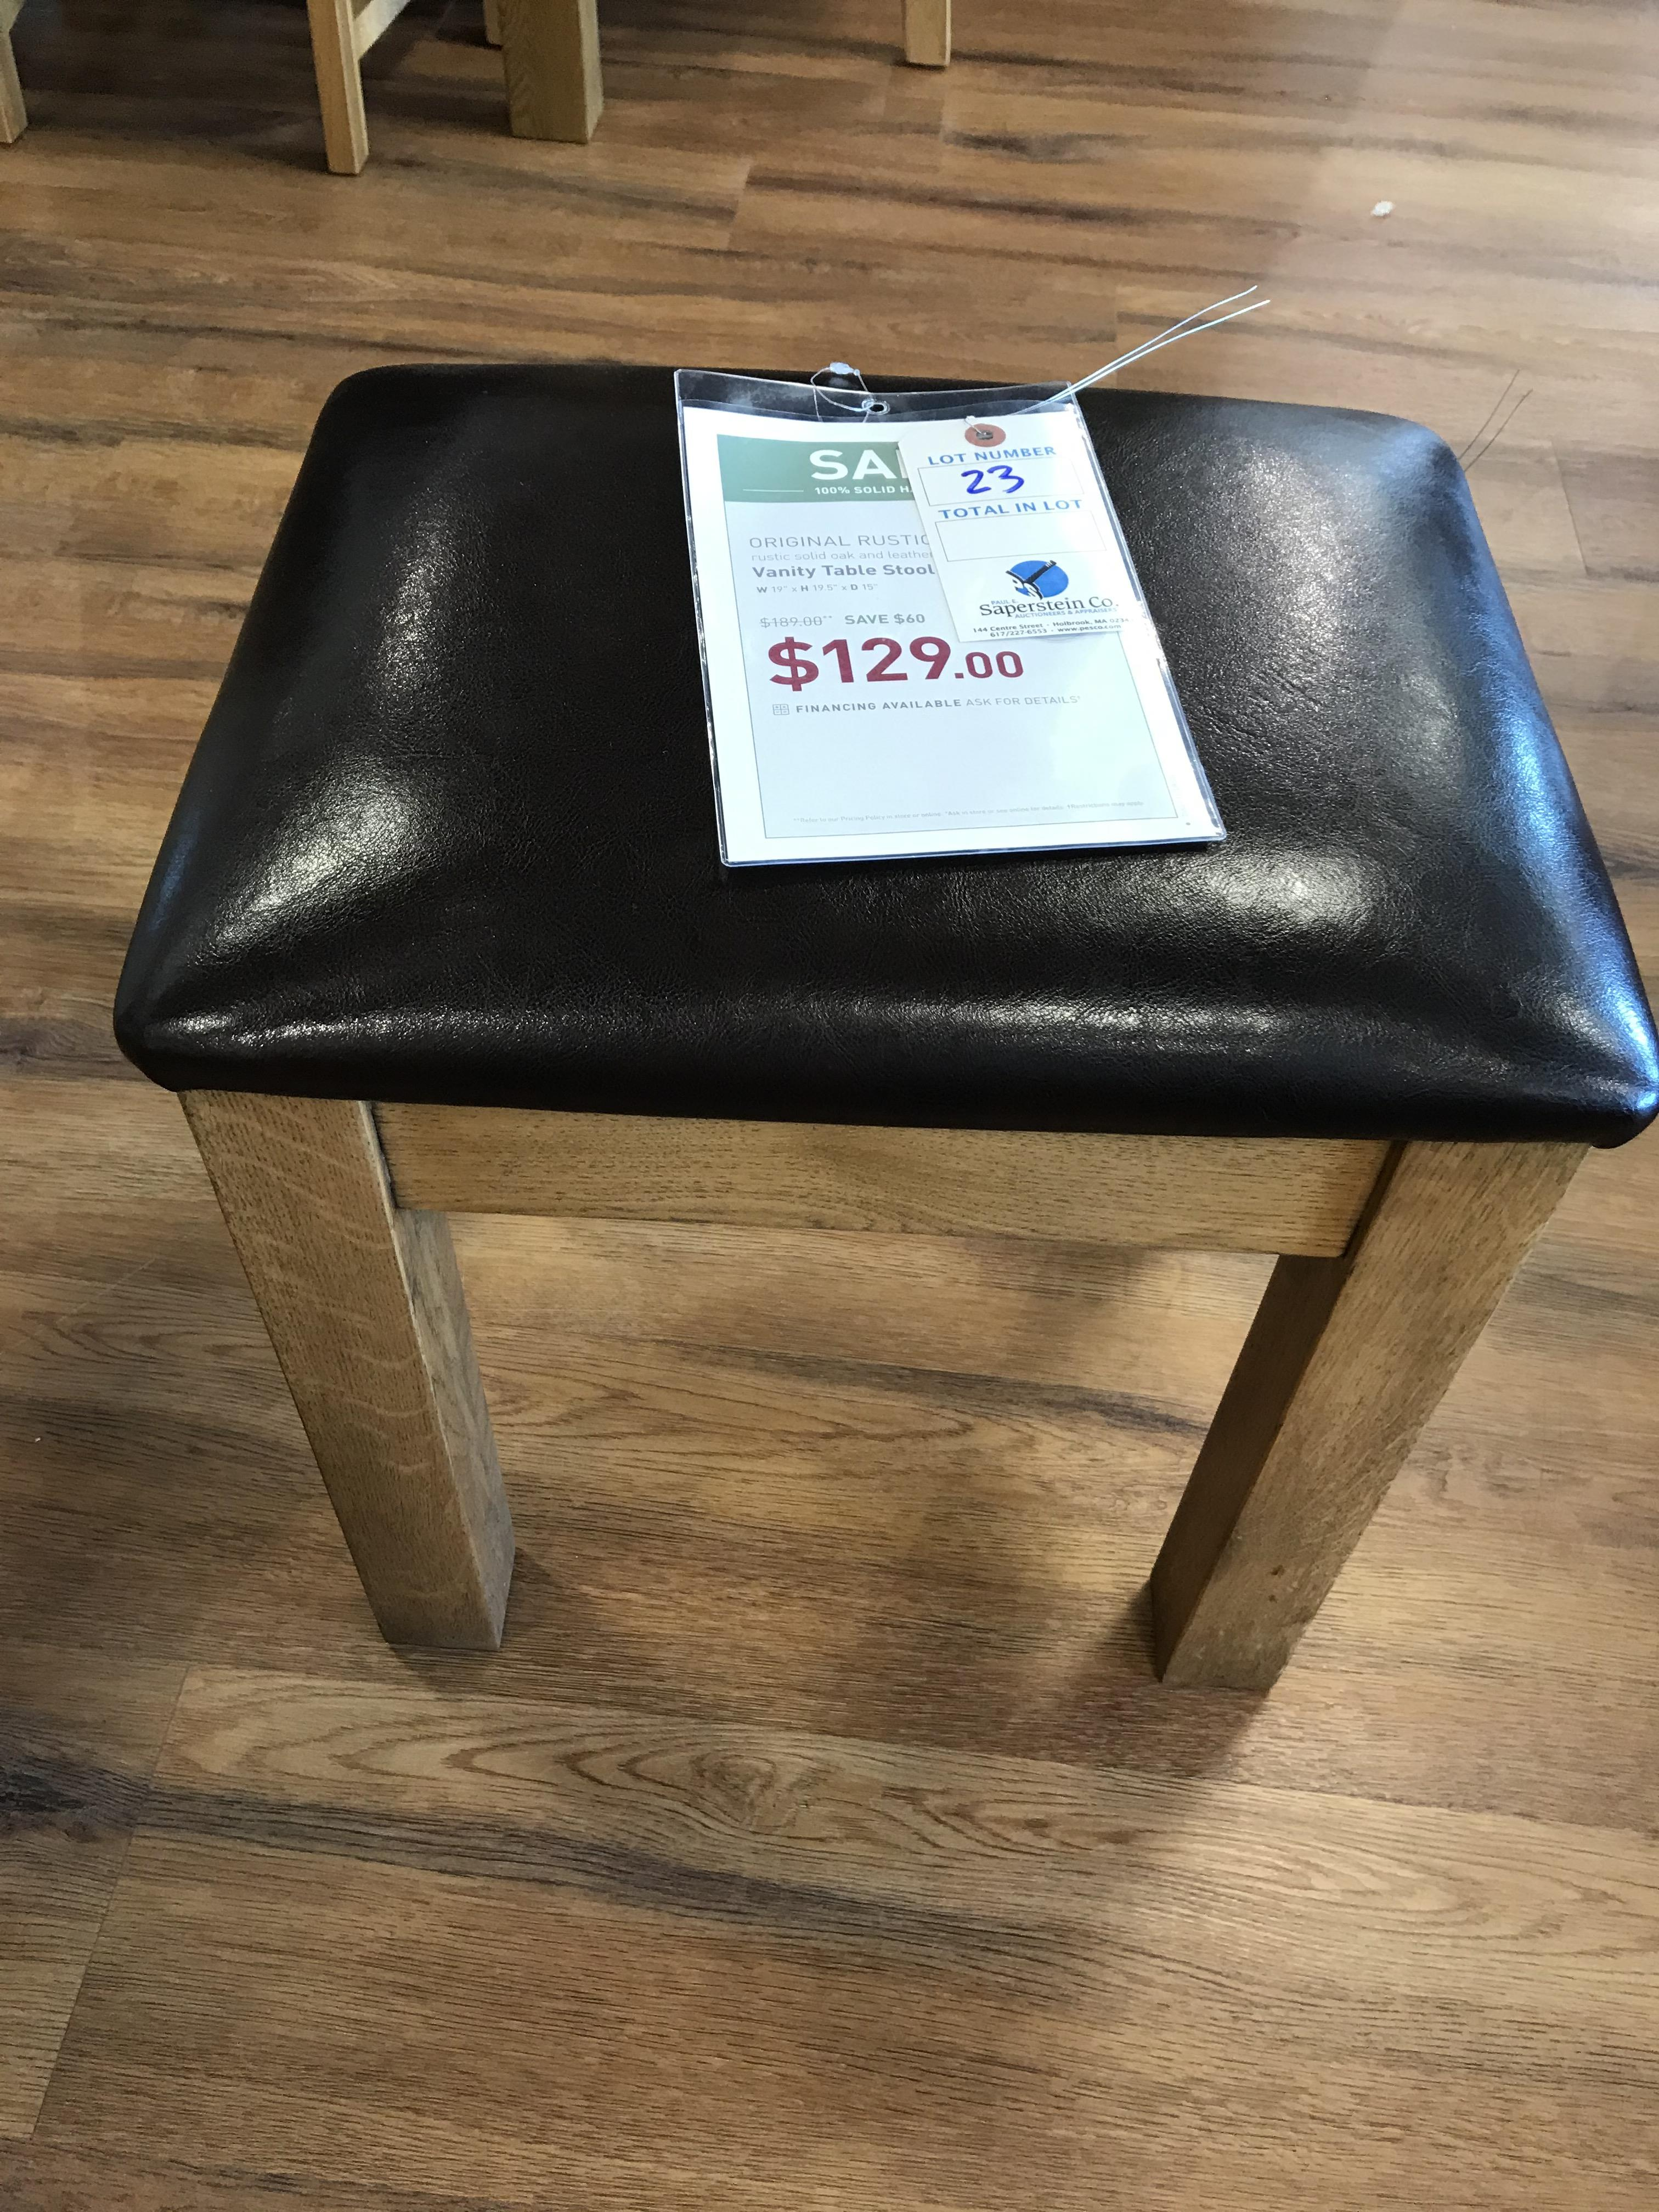 Vanity Table Stool (Original Rustic) See Picture For Dimensions and Product Info